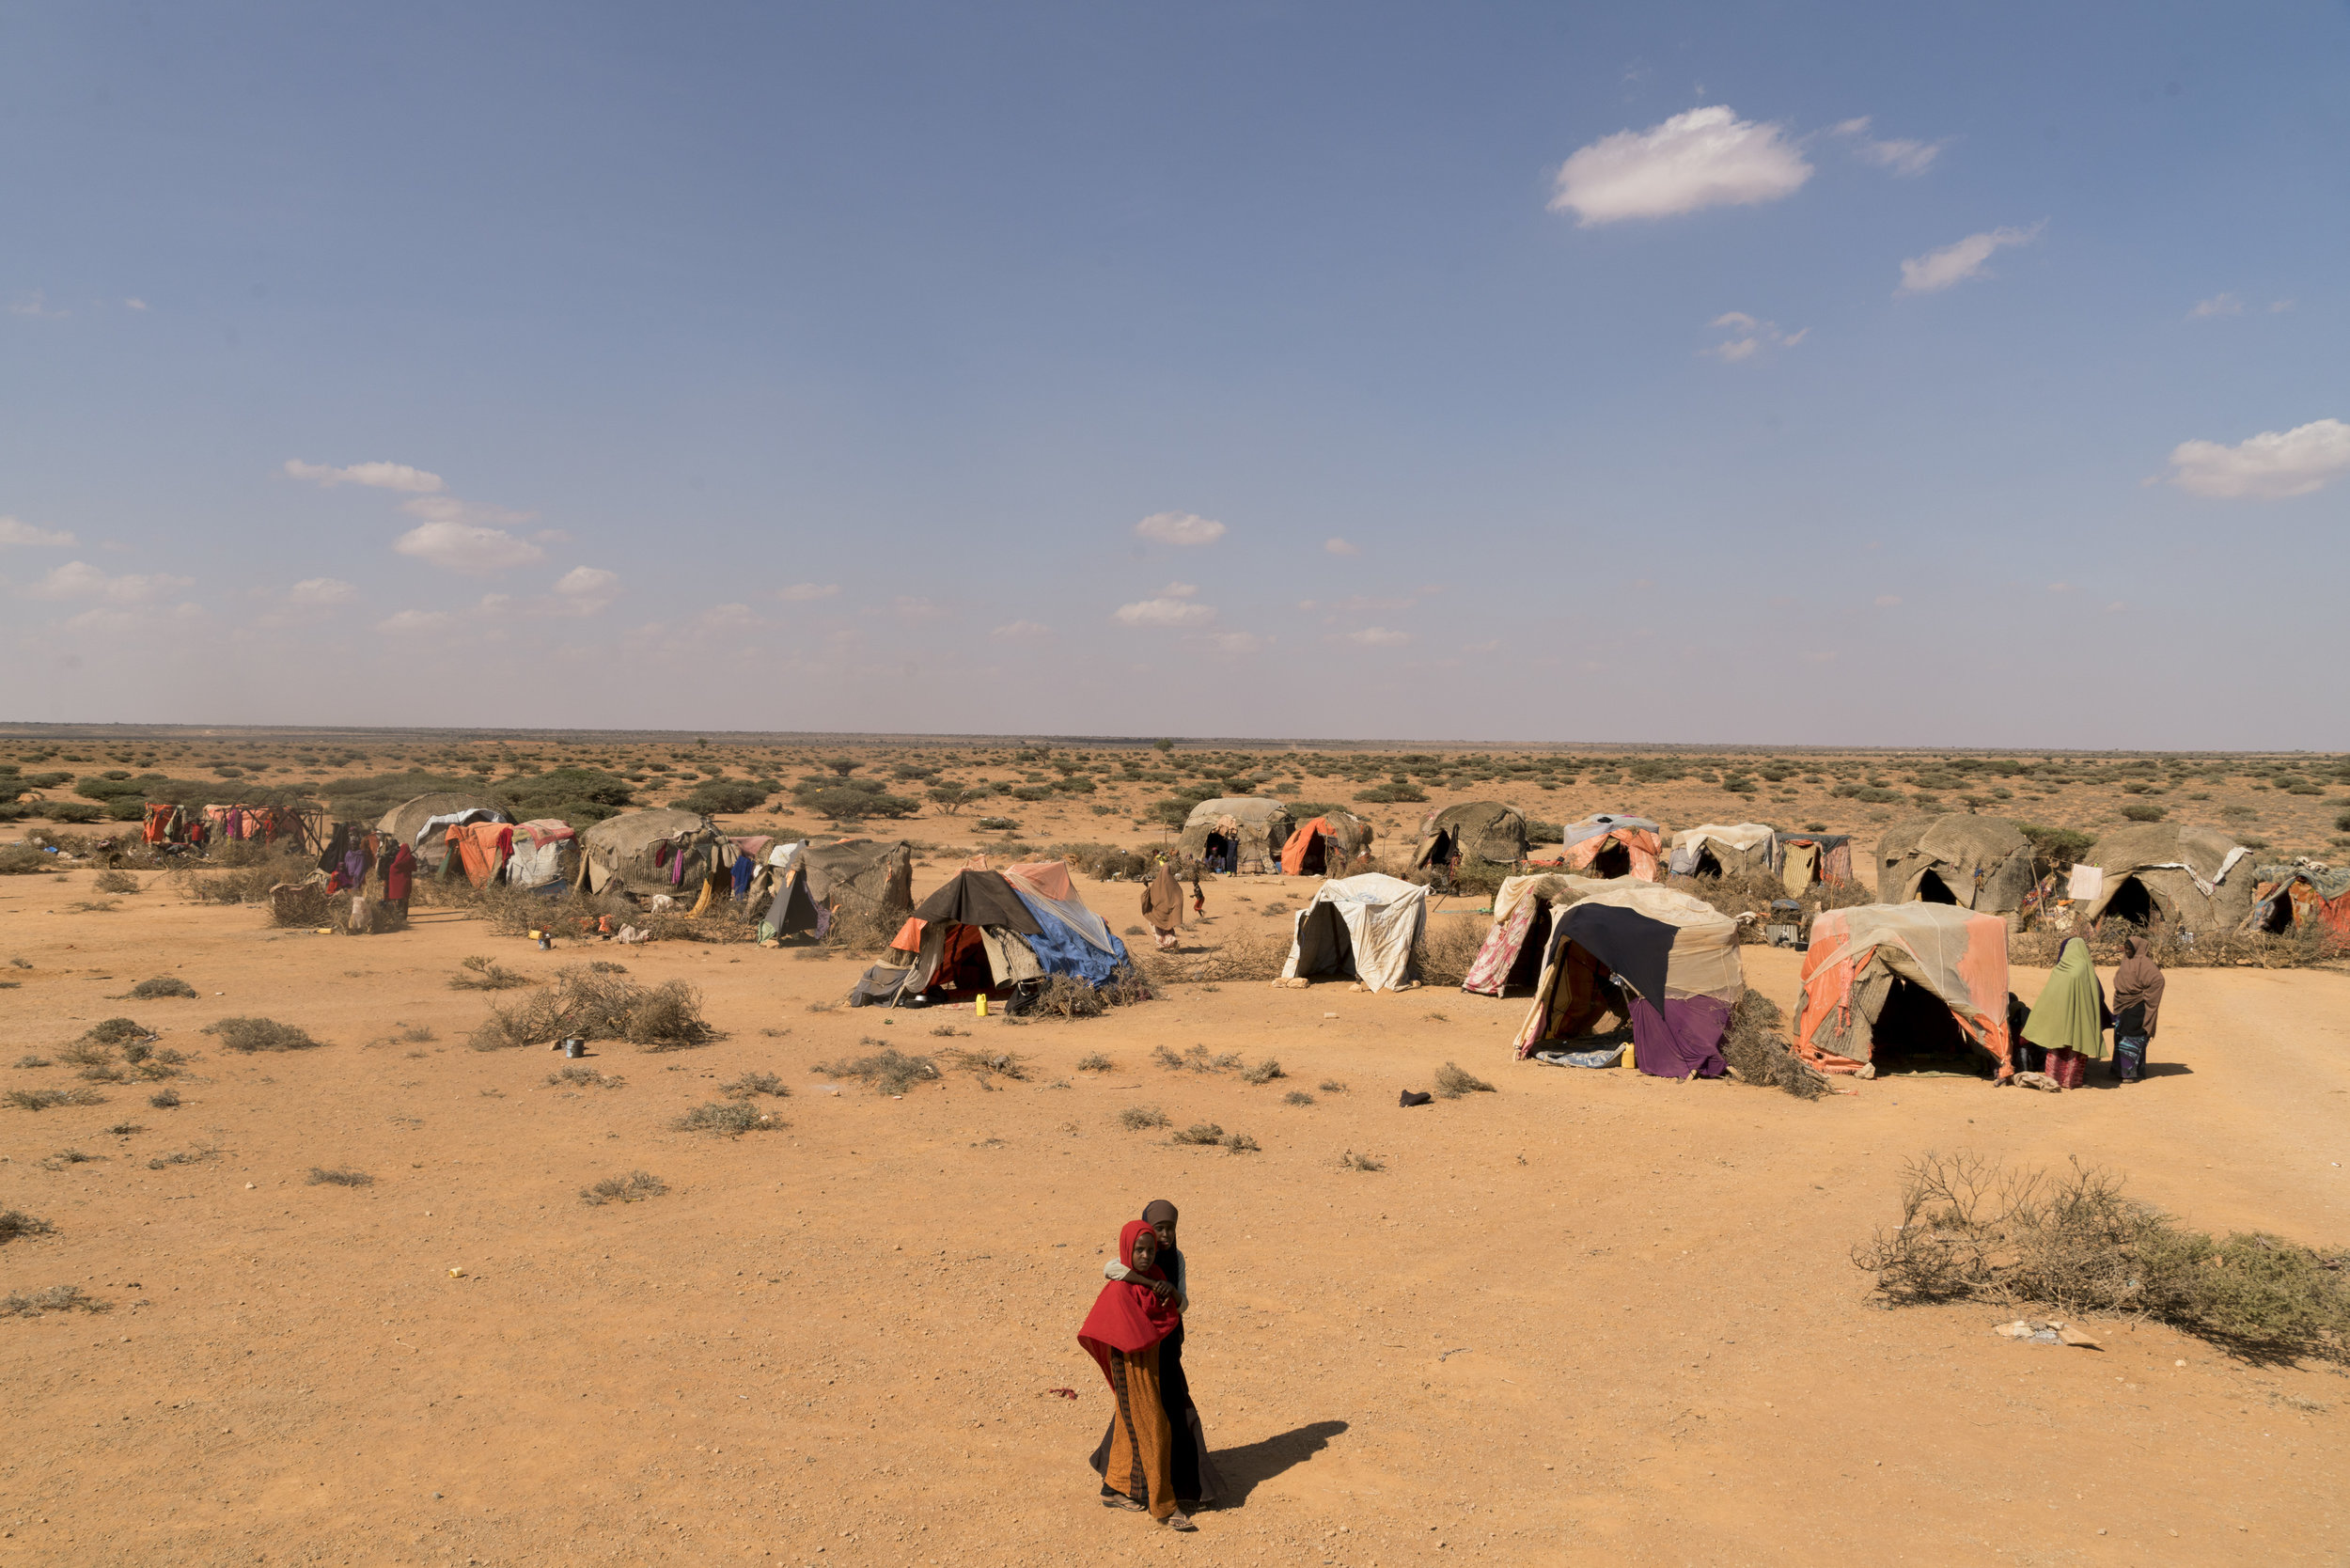 The shelters of nearly 400 pastoralists families who have lost a majority of their livestock due to drought, have set up camp along the road in search of food and water in Uusgure, Puntland, northern Somalia, February 18, 2017.